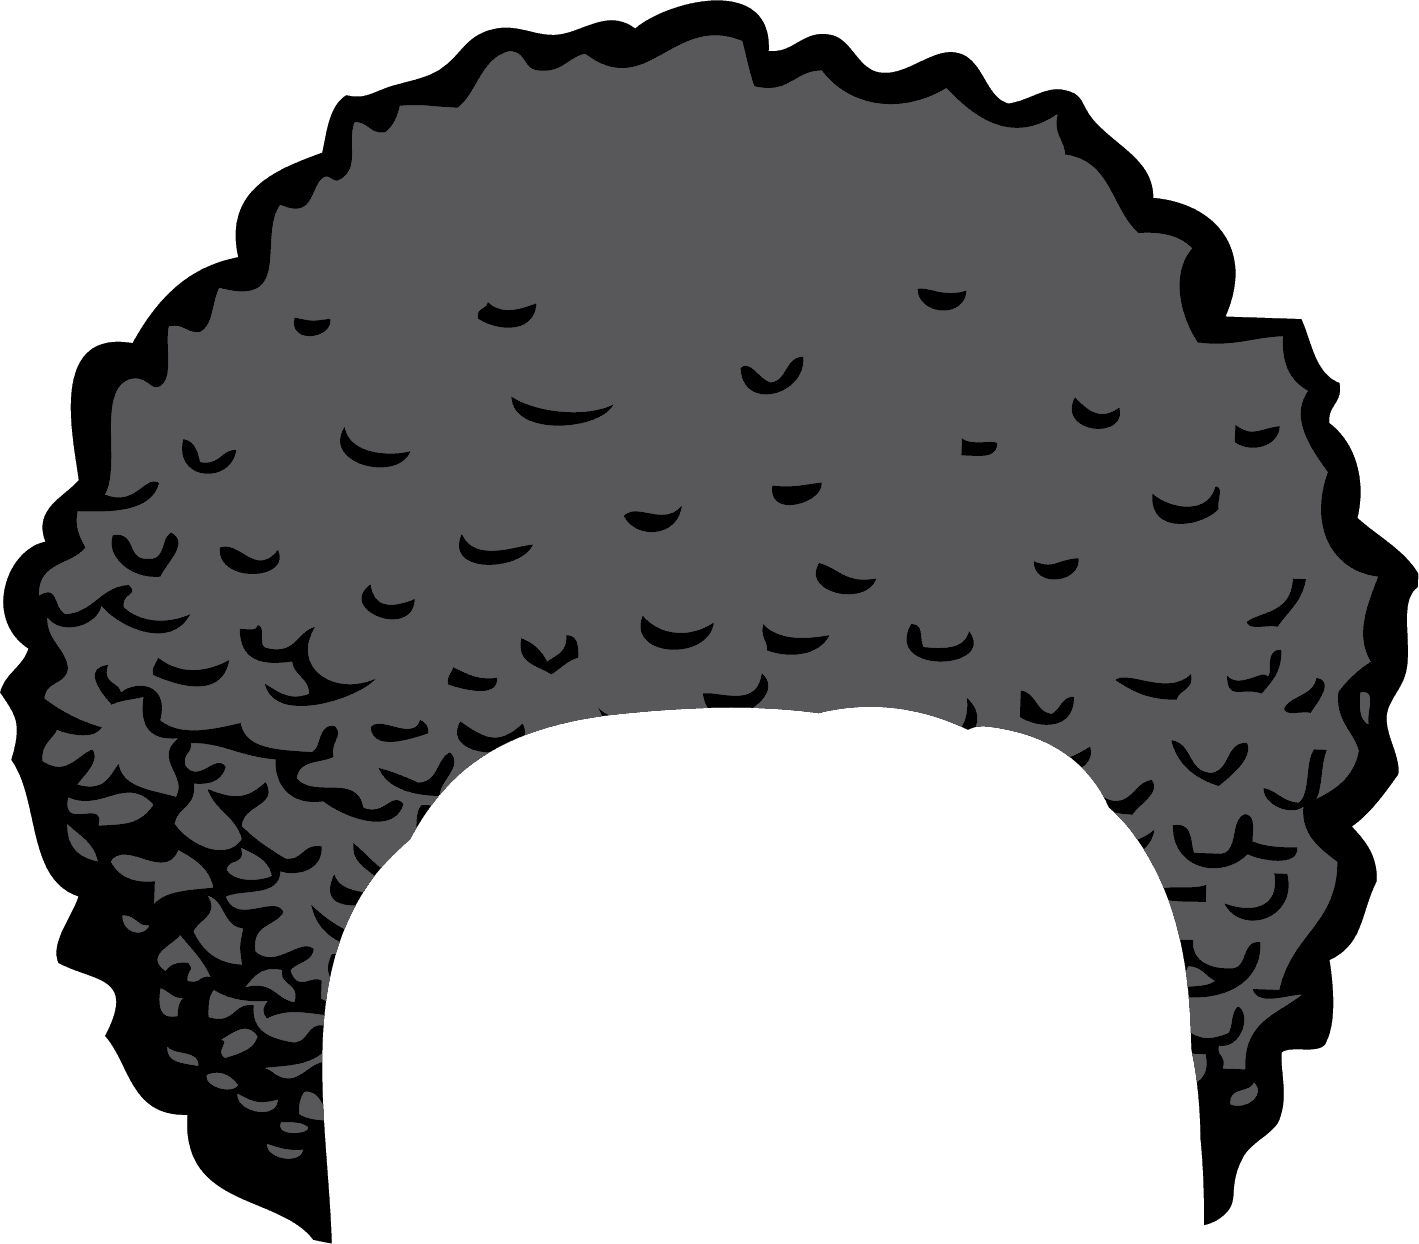 afro clipart pic 2292 transparentpng rh transparentpng com afro clip on hair piece afro clip on hair piece